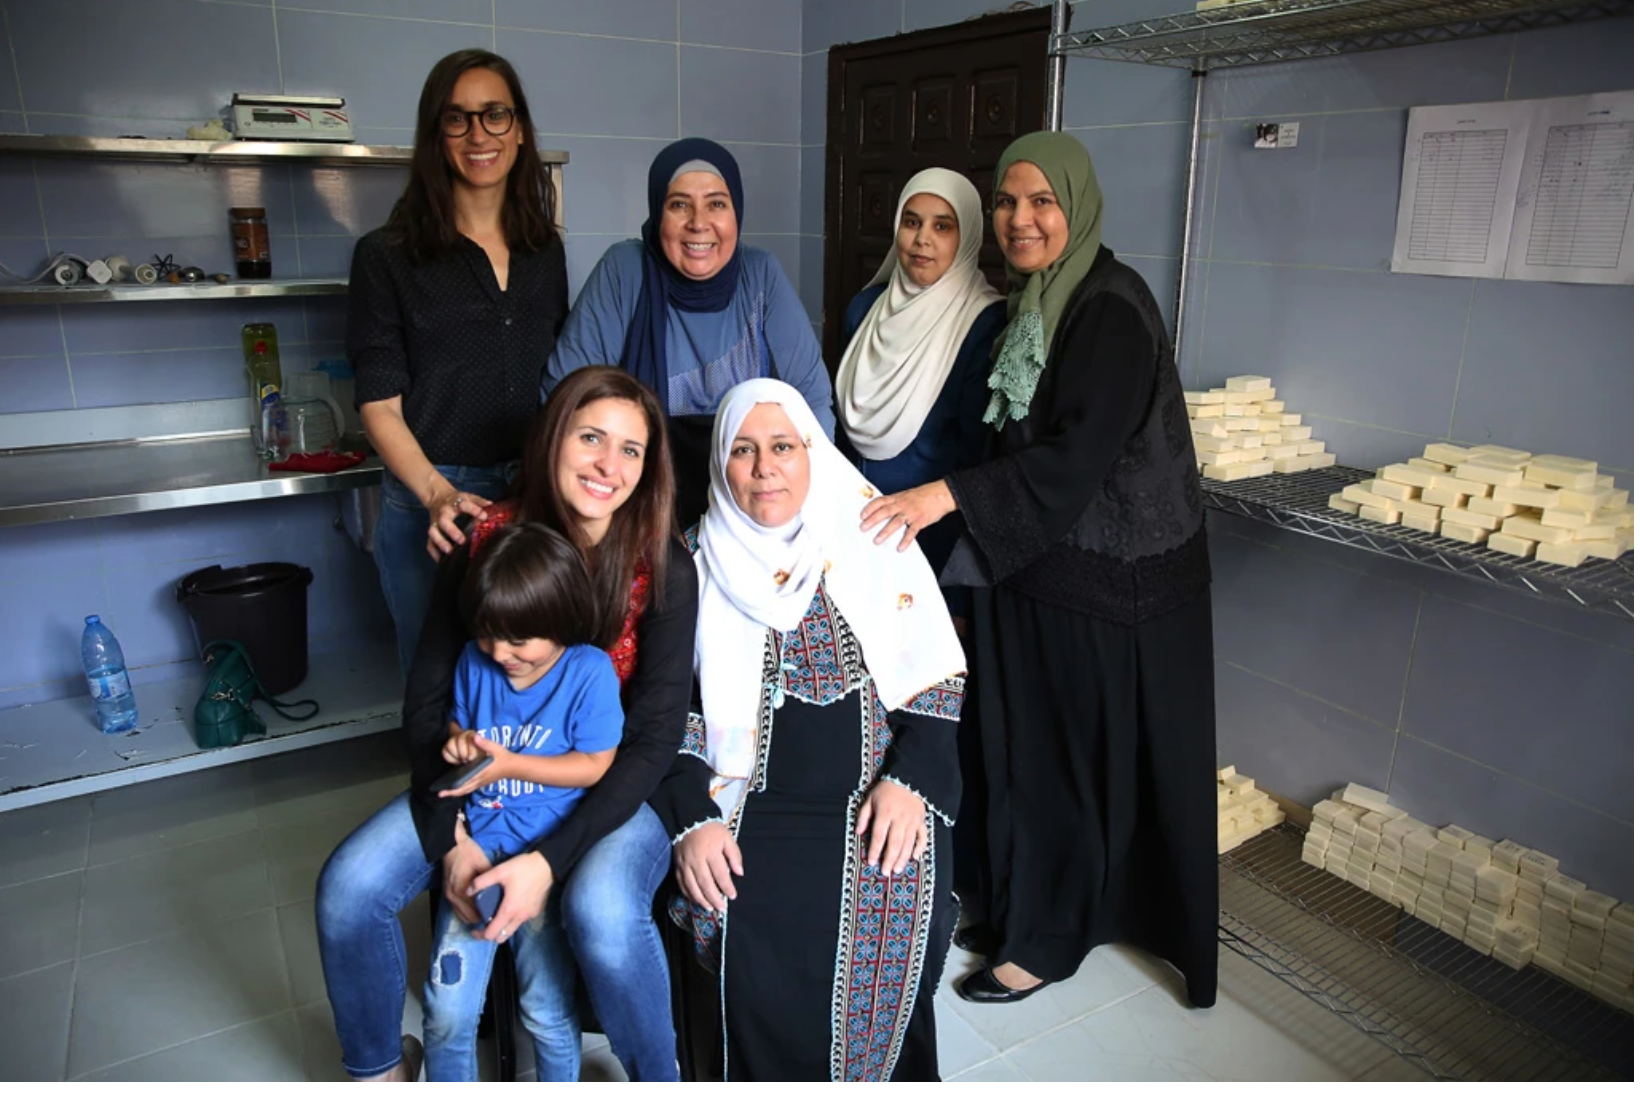 Olive Oil Soap Creating Opportunities for Refugees